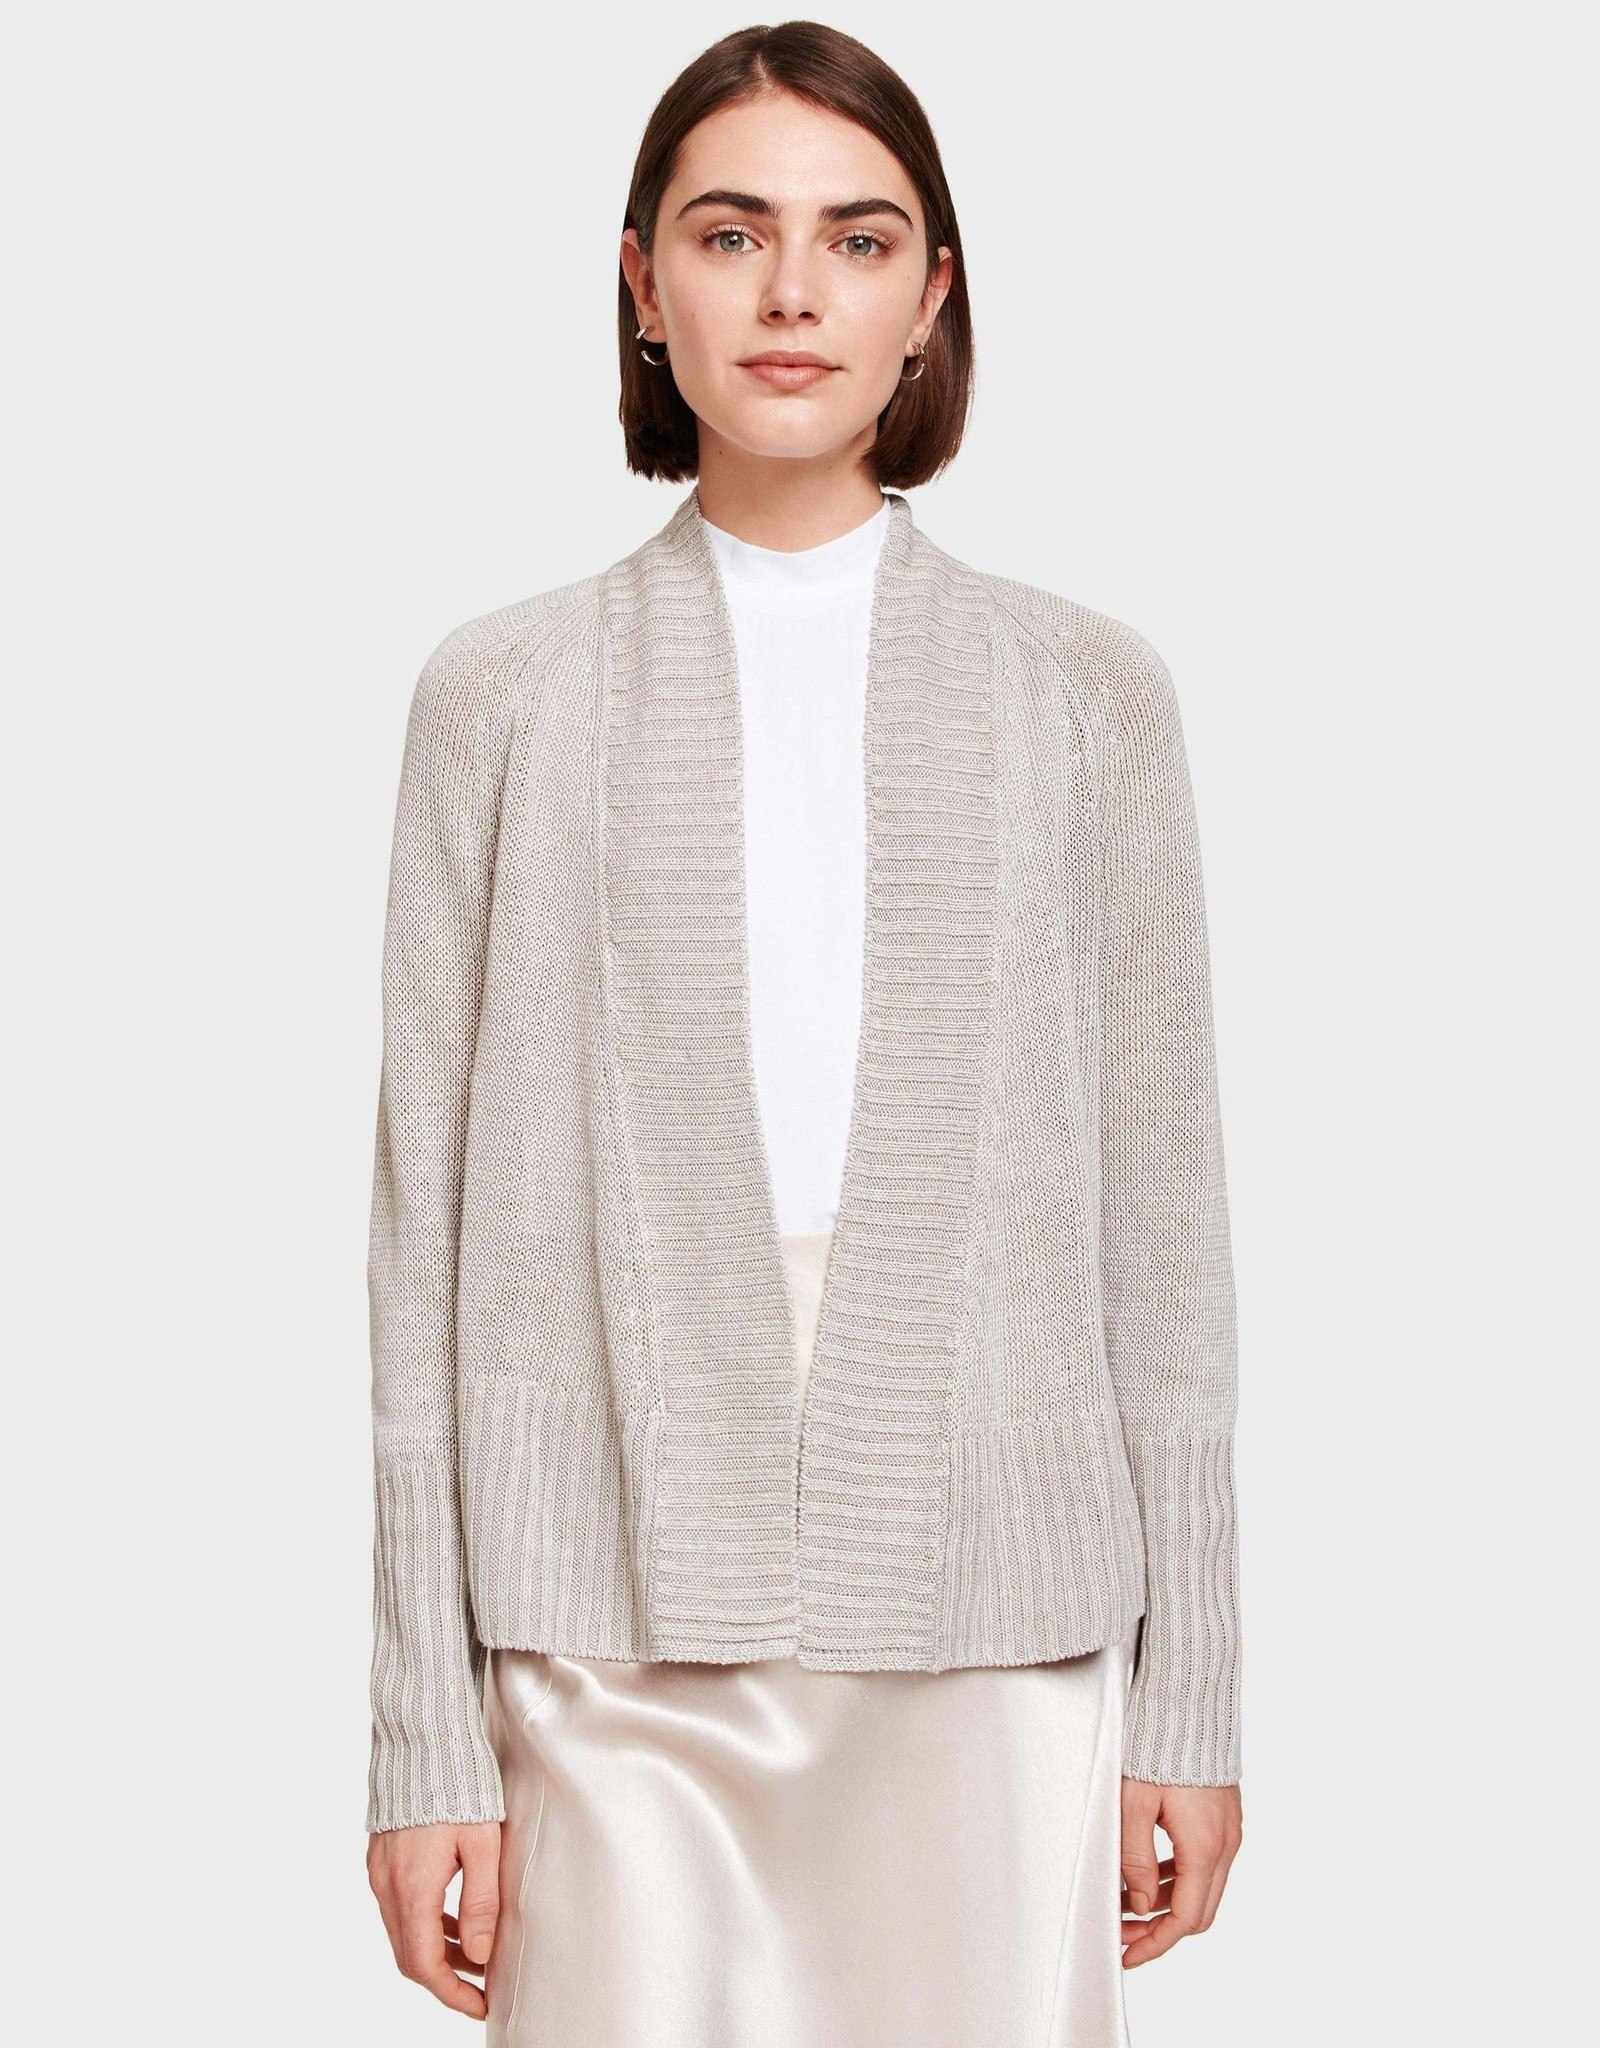 White + Warren 18617 Rib Placket Open Cardi